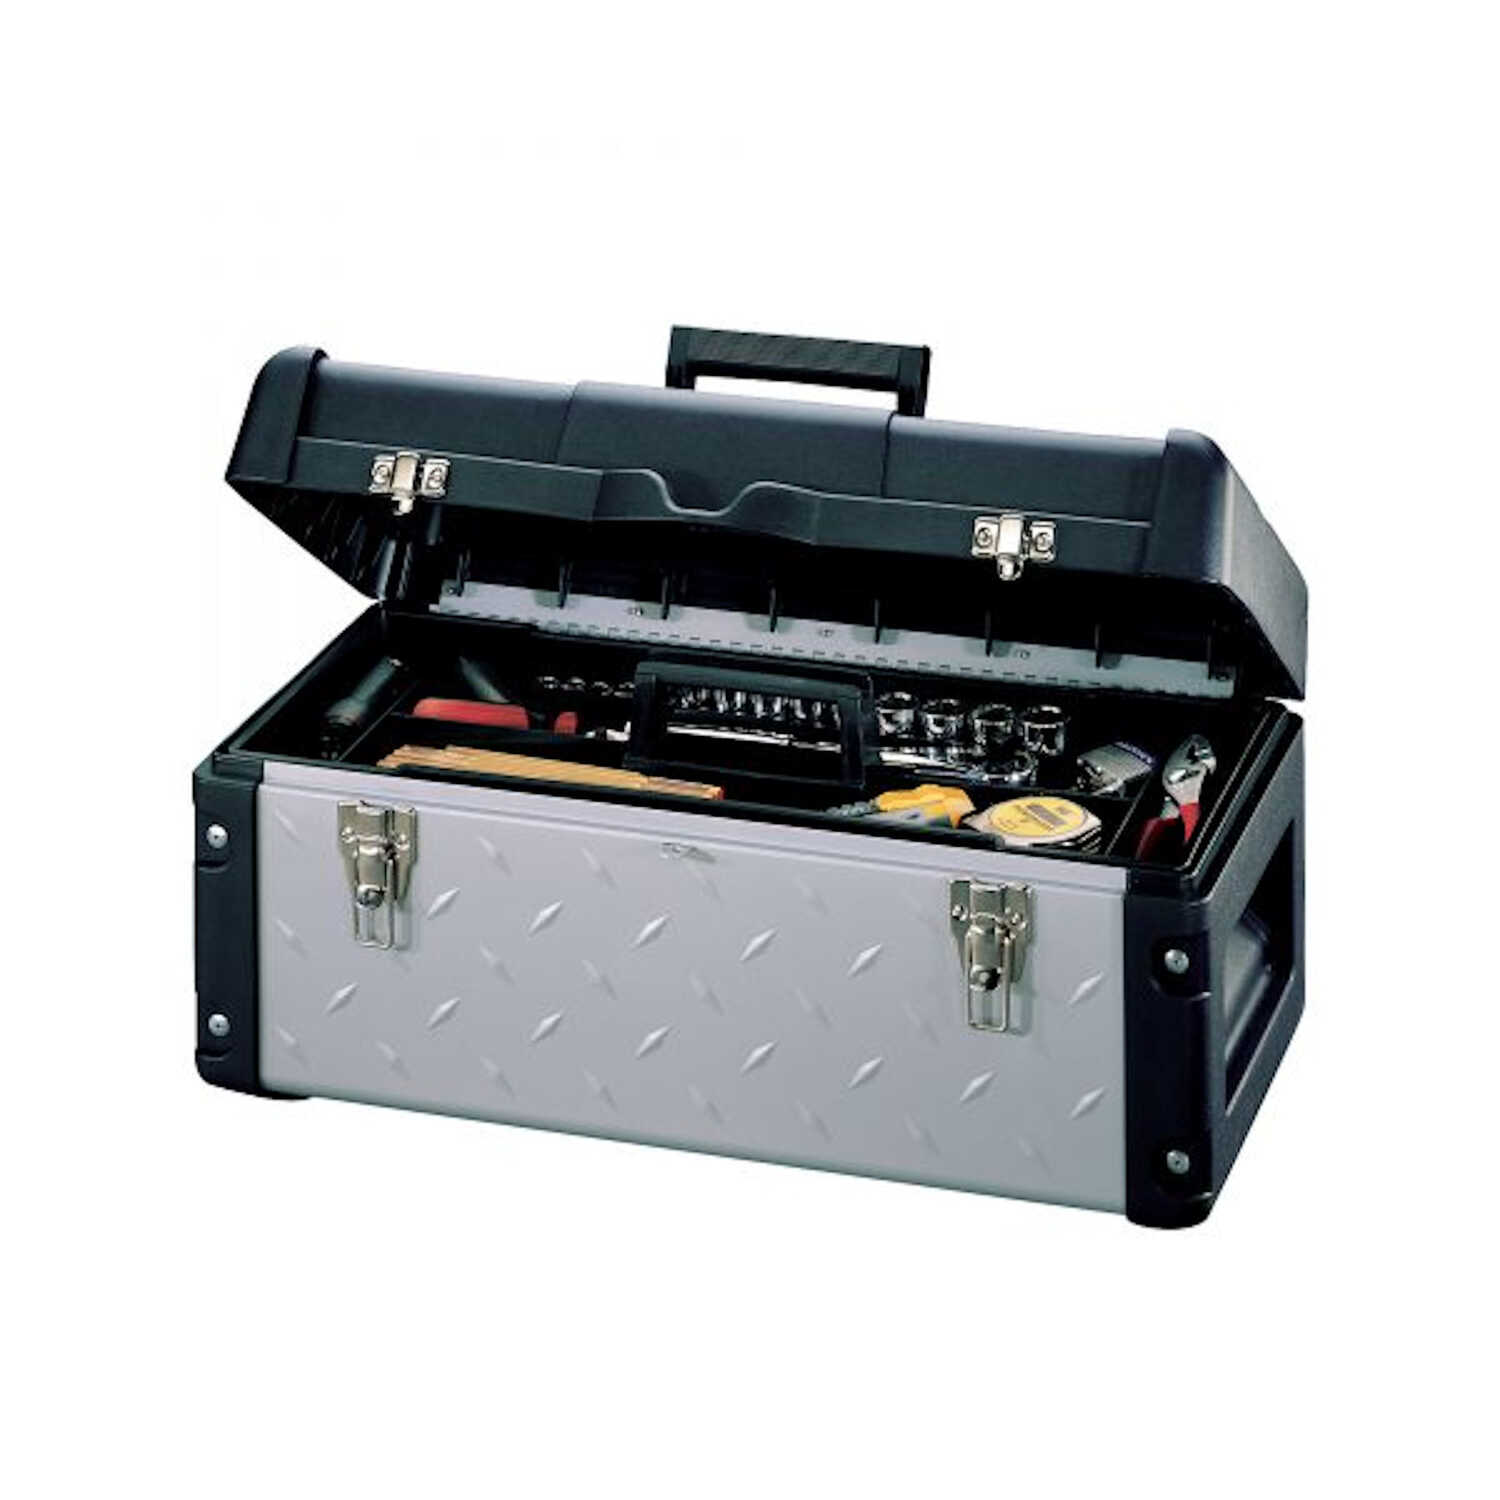 Stack-On  11.5 in. 22.5 in. W x 10.25 in. H Tool Box  Black  Metal/Plastic